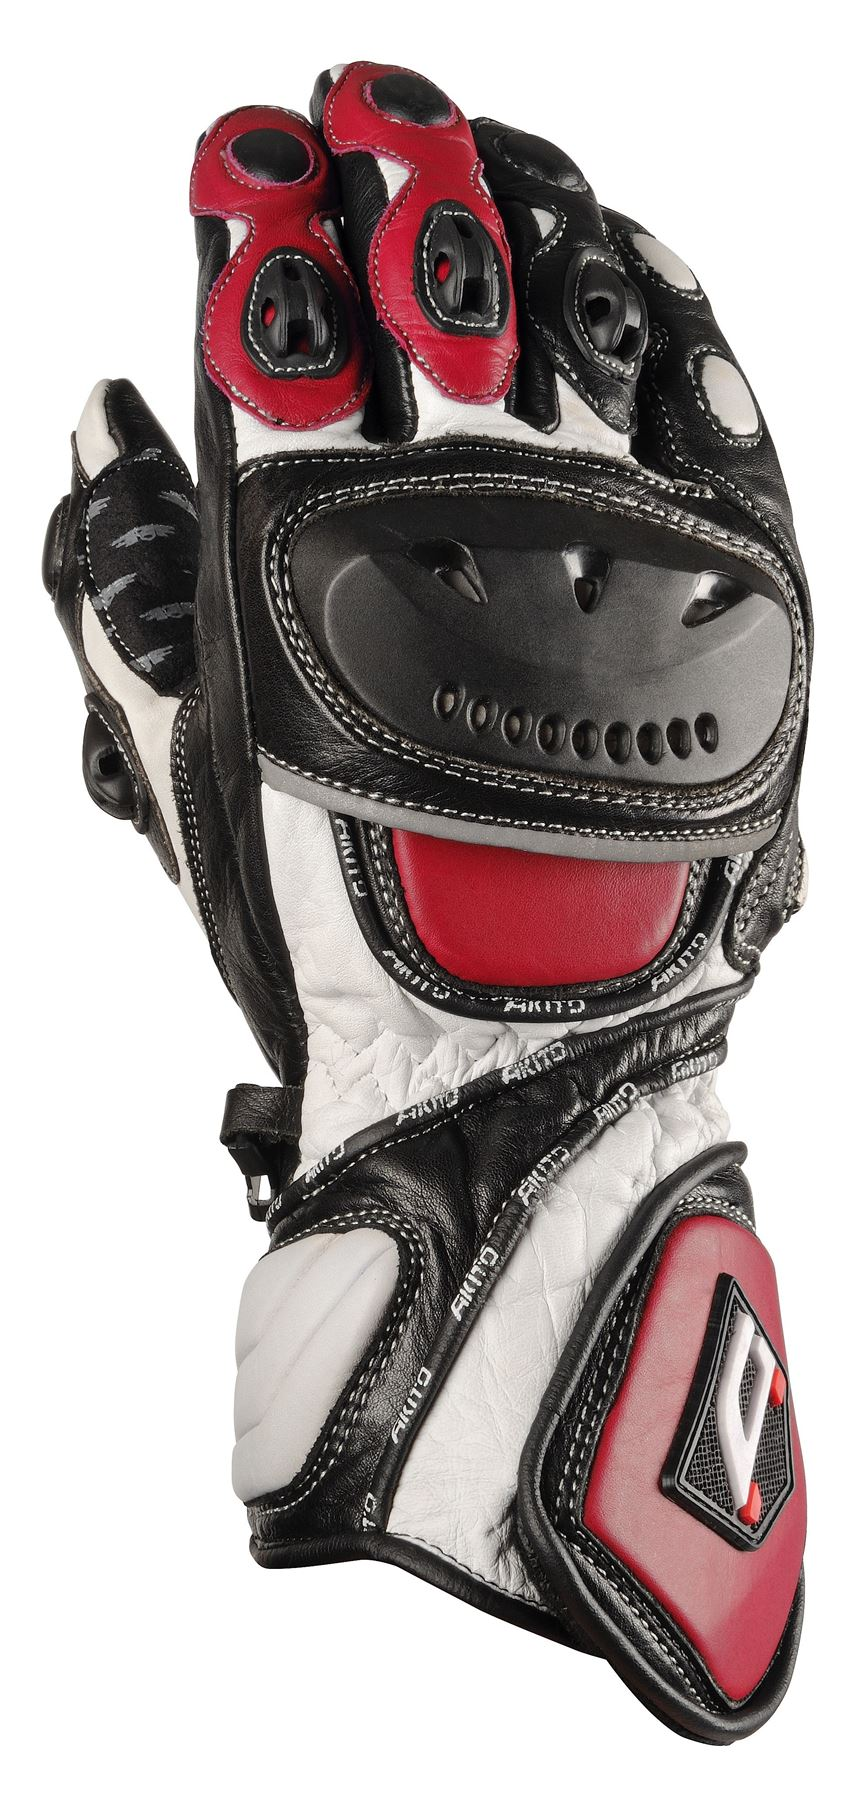 Motorcycle knuckle gloves - Akito Sport Max Leather Knuckle Protection Motorcycle Gloves